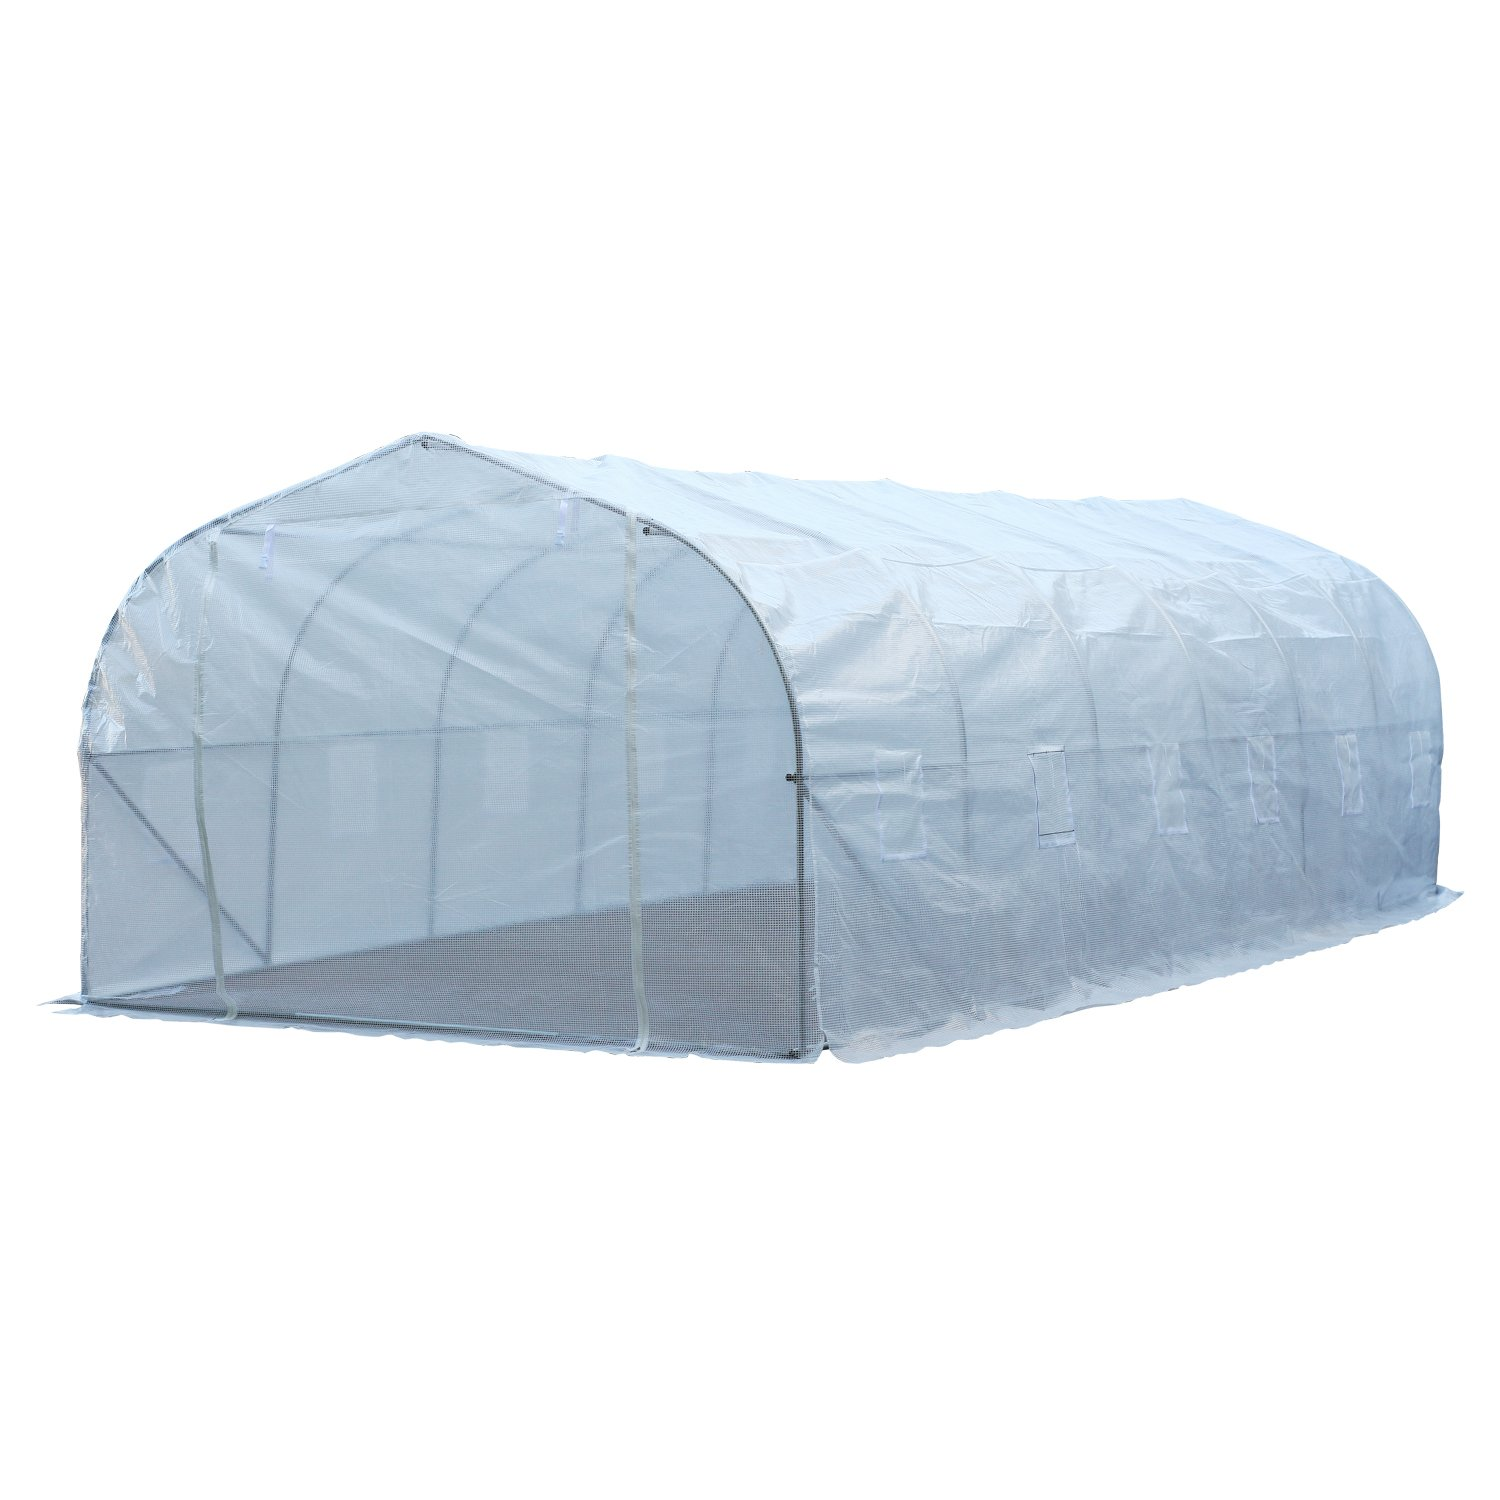 Outsunny 26'L x 10'W x 6.5'H Large Outdoor Heavy Duty Walk-In Greenhouse (White)